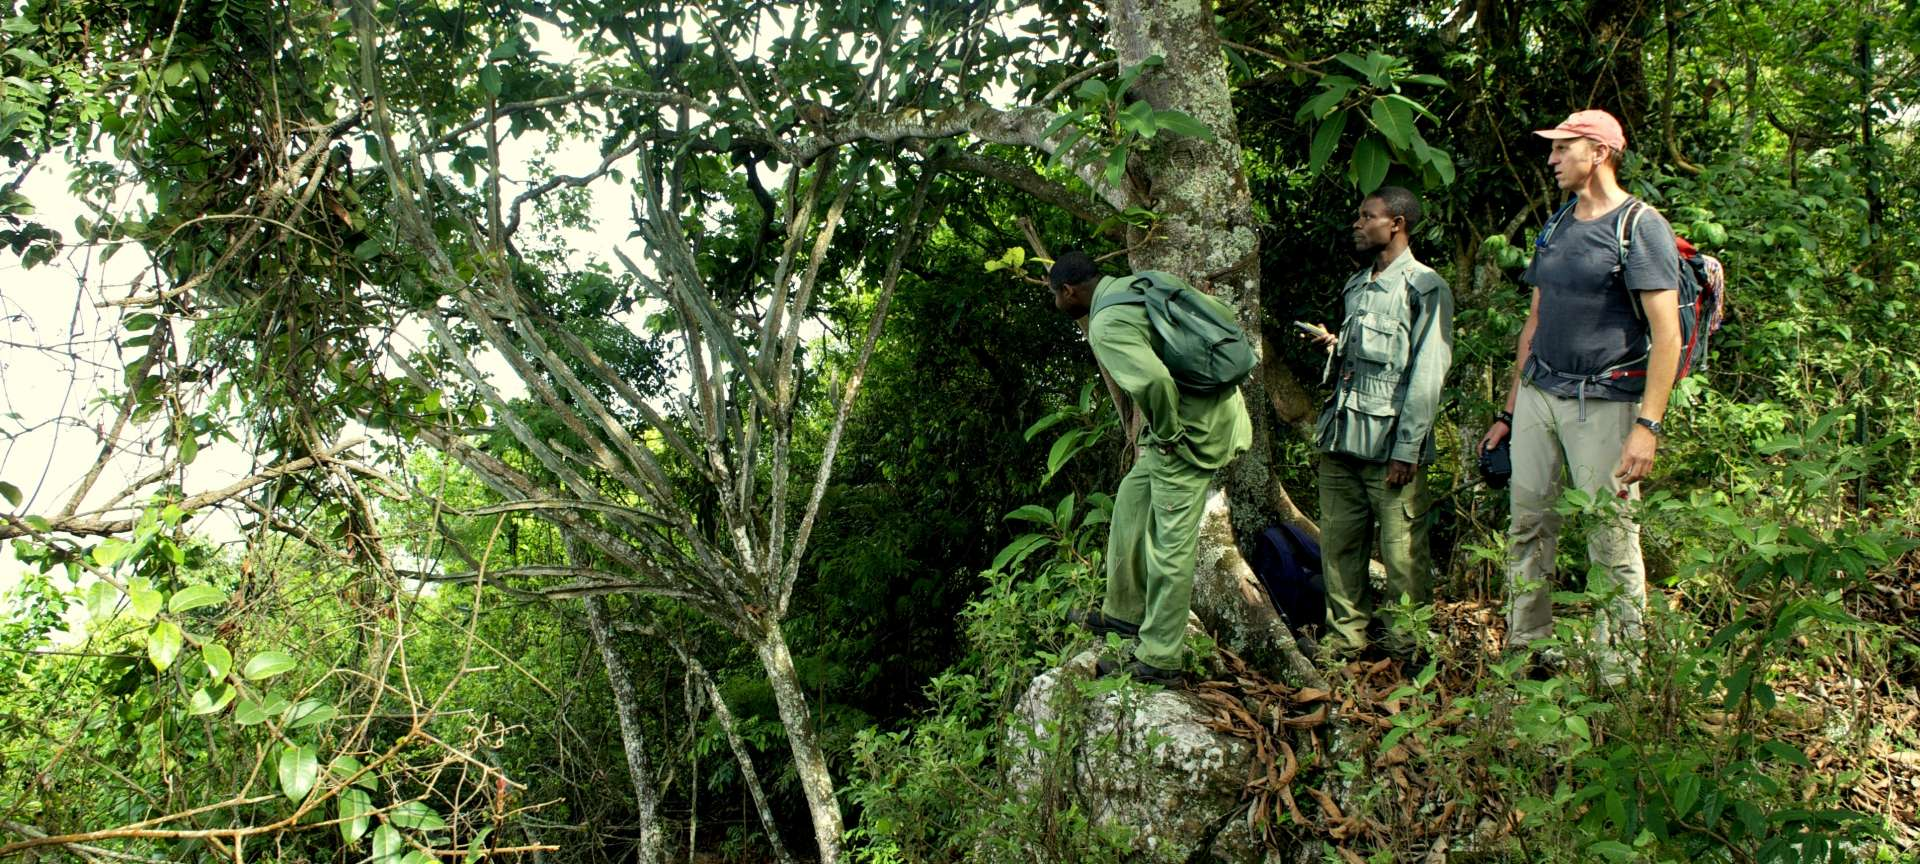 Hiking through Tanzania's indigenous forests